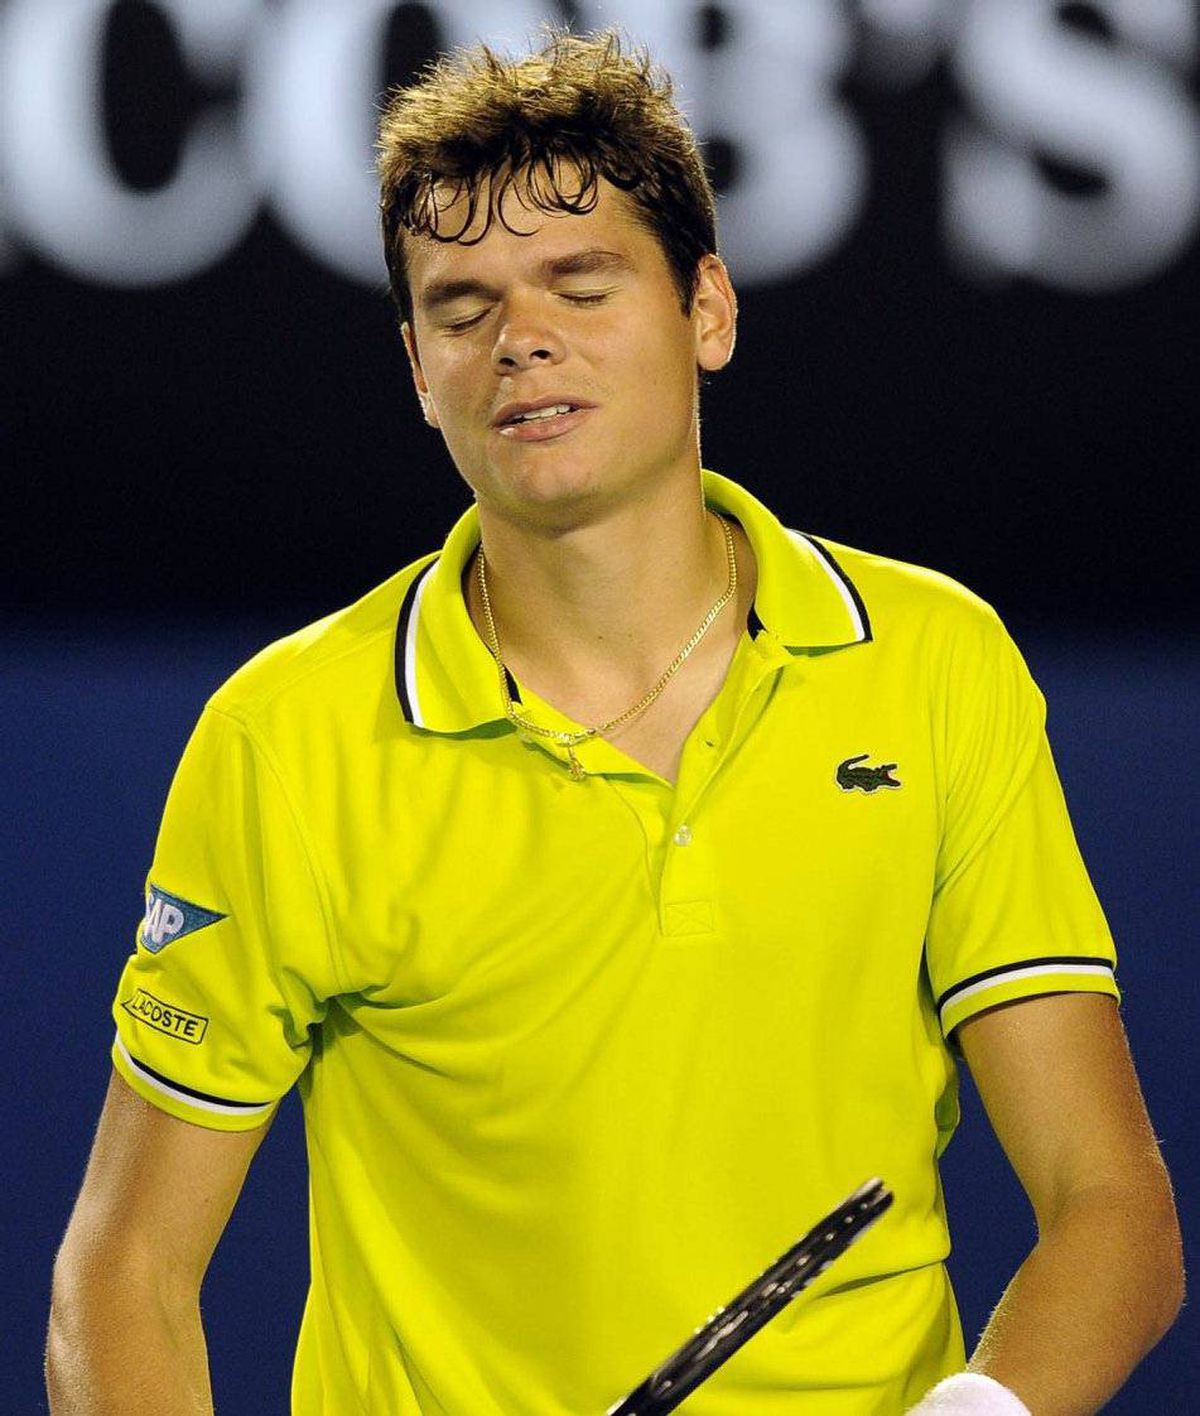 Milos Raonic Serving up a dark, handsome Canadian ace should help wash away the bad taste left by Australian tennis player Mark Philippoussis, whose 2007 NBC dating show, Age of Love, shamelessly pitted Cougars against Kittens. (He chose a 25-year-old dancer for the Nashville Predators.)